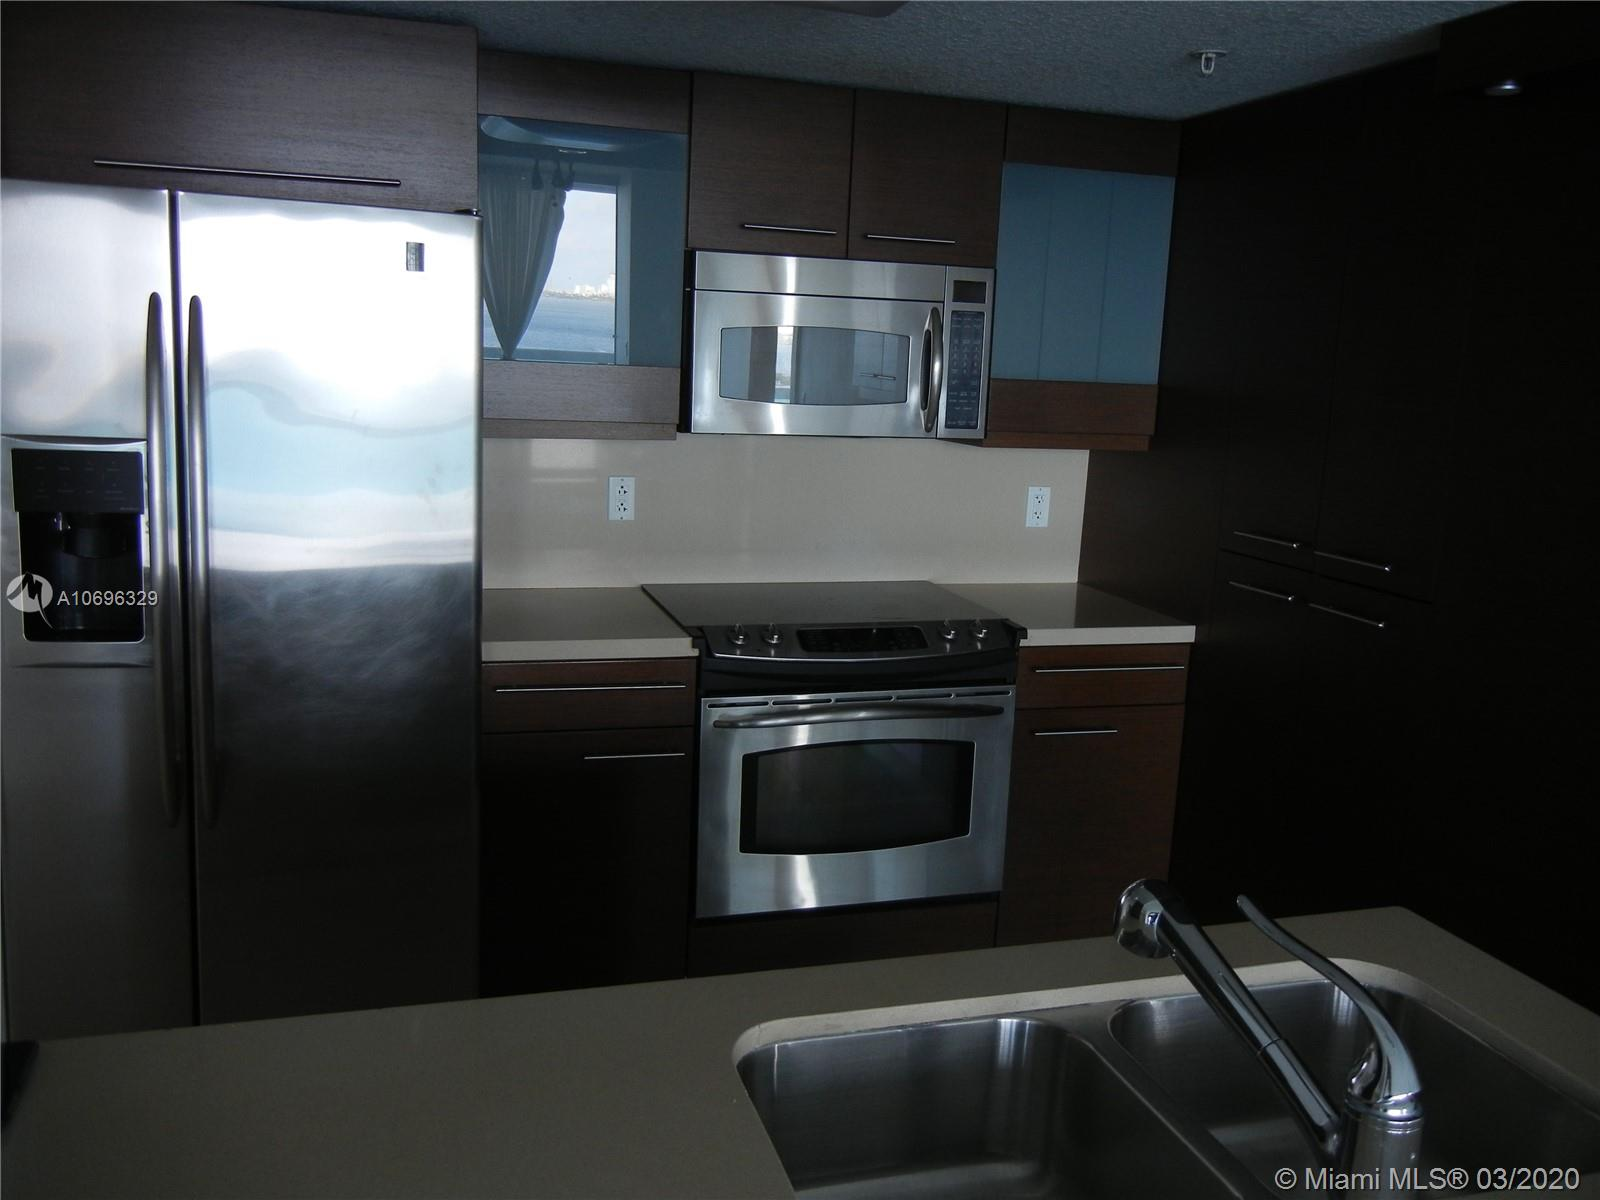 Just Reduced for a quick sale.  Enjoy amazing bay and park views from this 2 bedroom 2 bathroom corner split floor plan unit at the 1800 Club. Unit has many additional upgrades.  Open kitchen with dining island, built out closets, tile flooring throughout.  Master bedroom has an additional window for added light and north views. Terrace runs along the whole front of the unit overlooking the bay, Miami Beach, and the Margaret Pace park.  Building has many amenities: pool, gym, meeting rooms, security, attended lobby, valet parking. Convenient location right between 395 and 195 east of Biscayne Blvd, easy access to I-95, Miami Beach and Midtown. Walk to supermarket, restaurants, and the Arsht center. Contact listing agent for showing instructions.